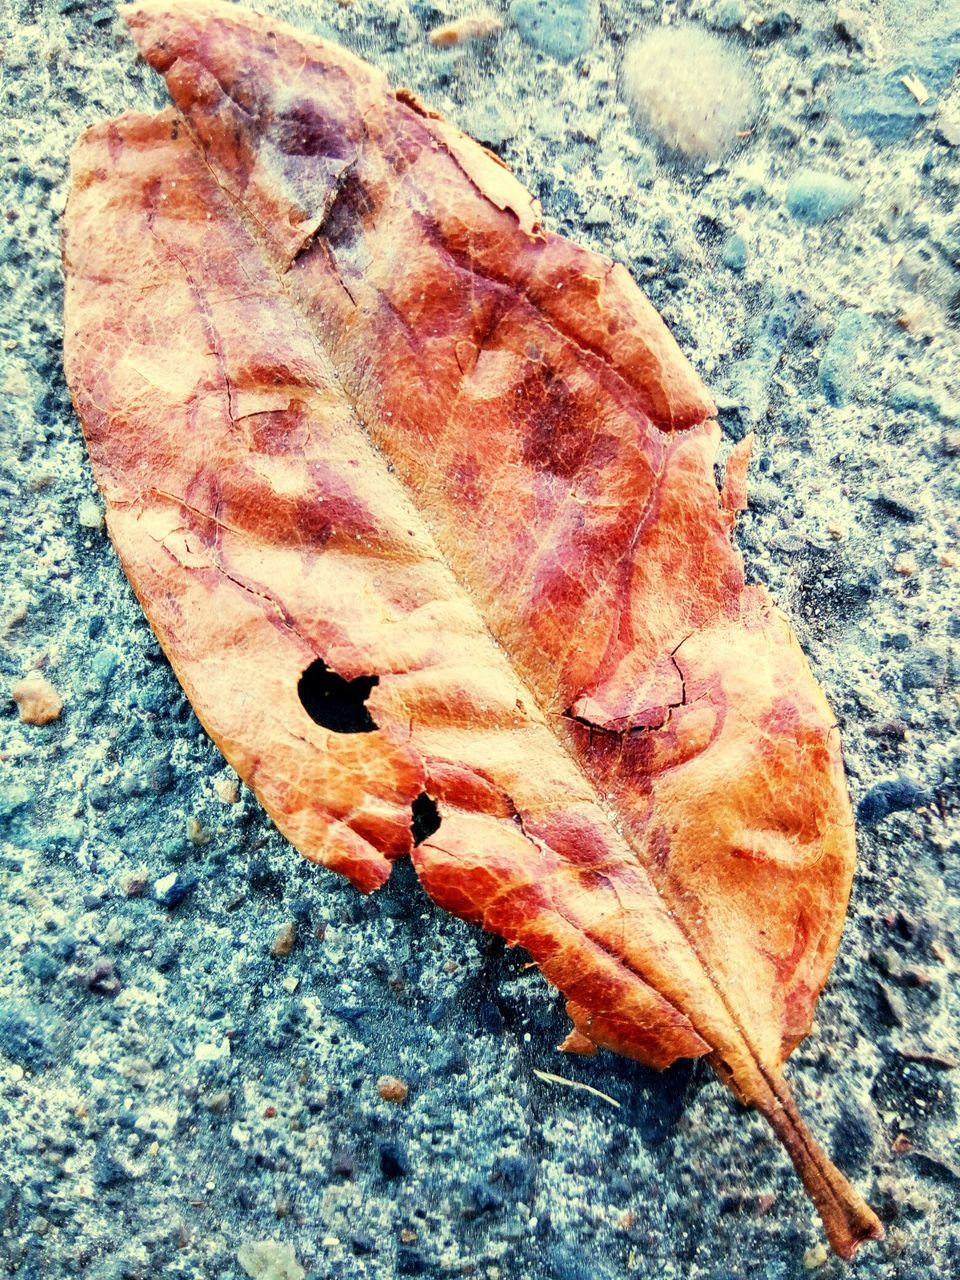 leaf, no people, nature, fish, change, close-up, autumn, day, outdoors, food, animal themes